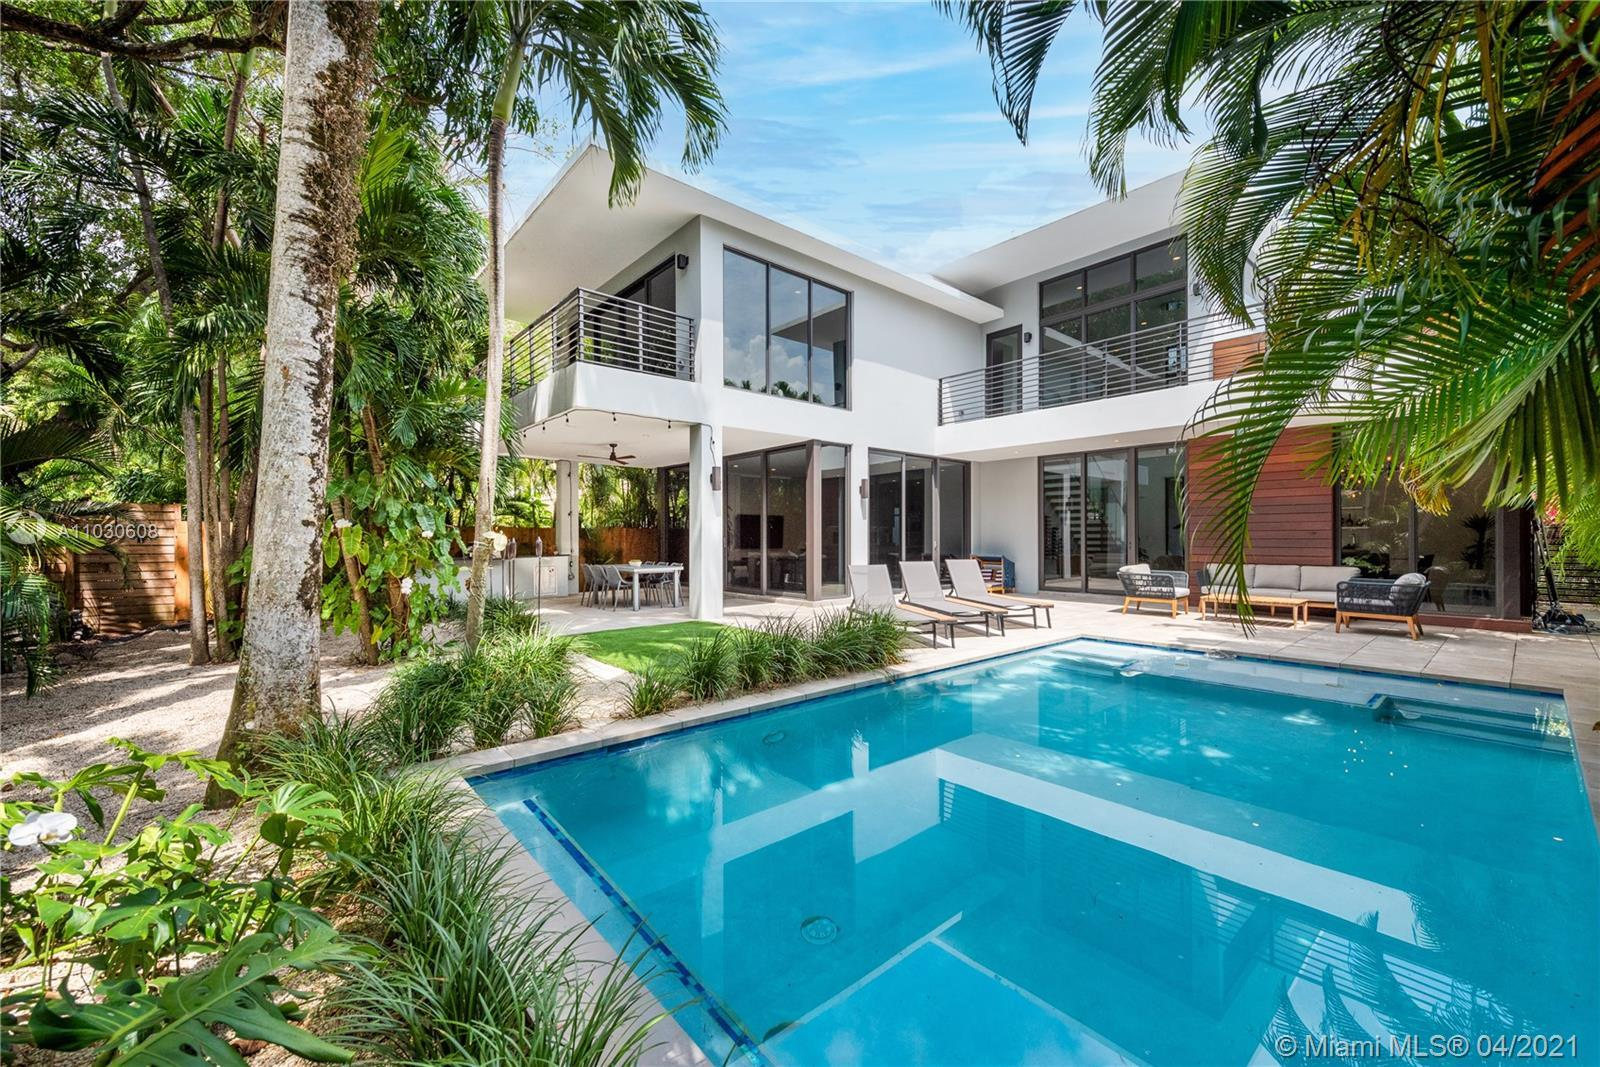 Fall in love with this Tropical Modern masterpiece in North Coconut Grove. Step inside and you're im